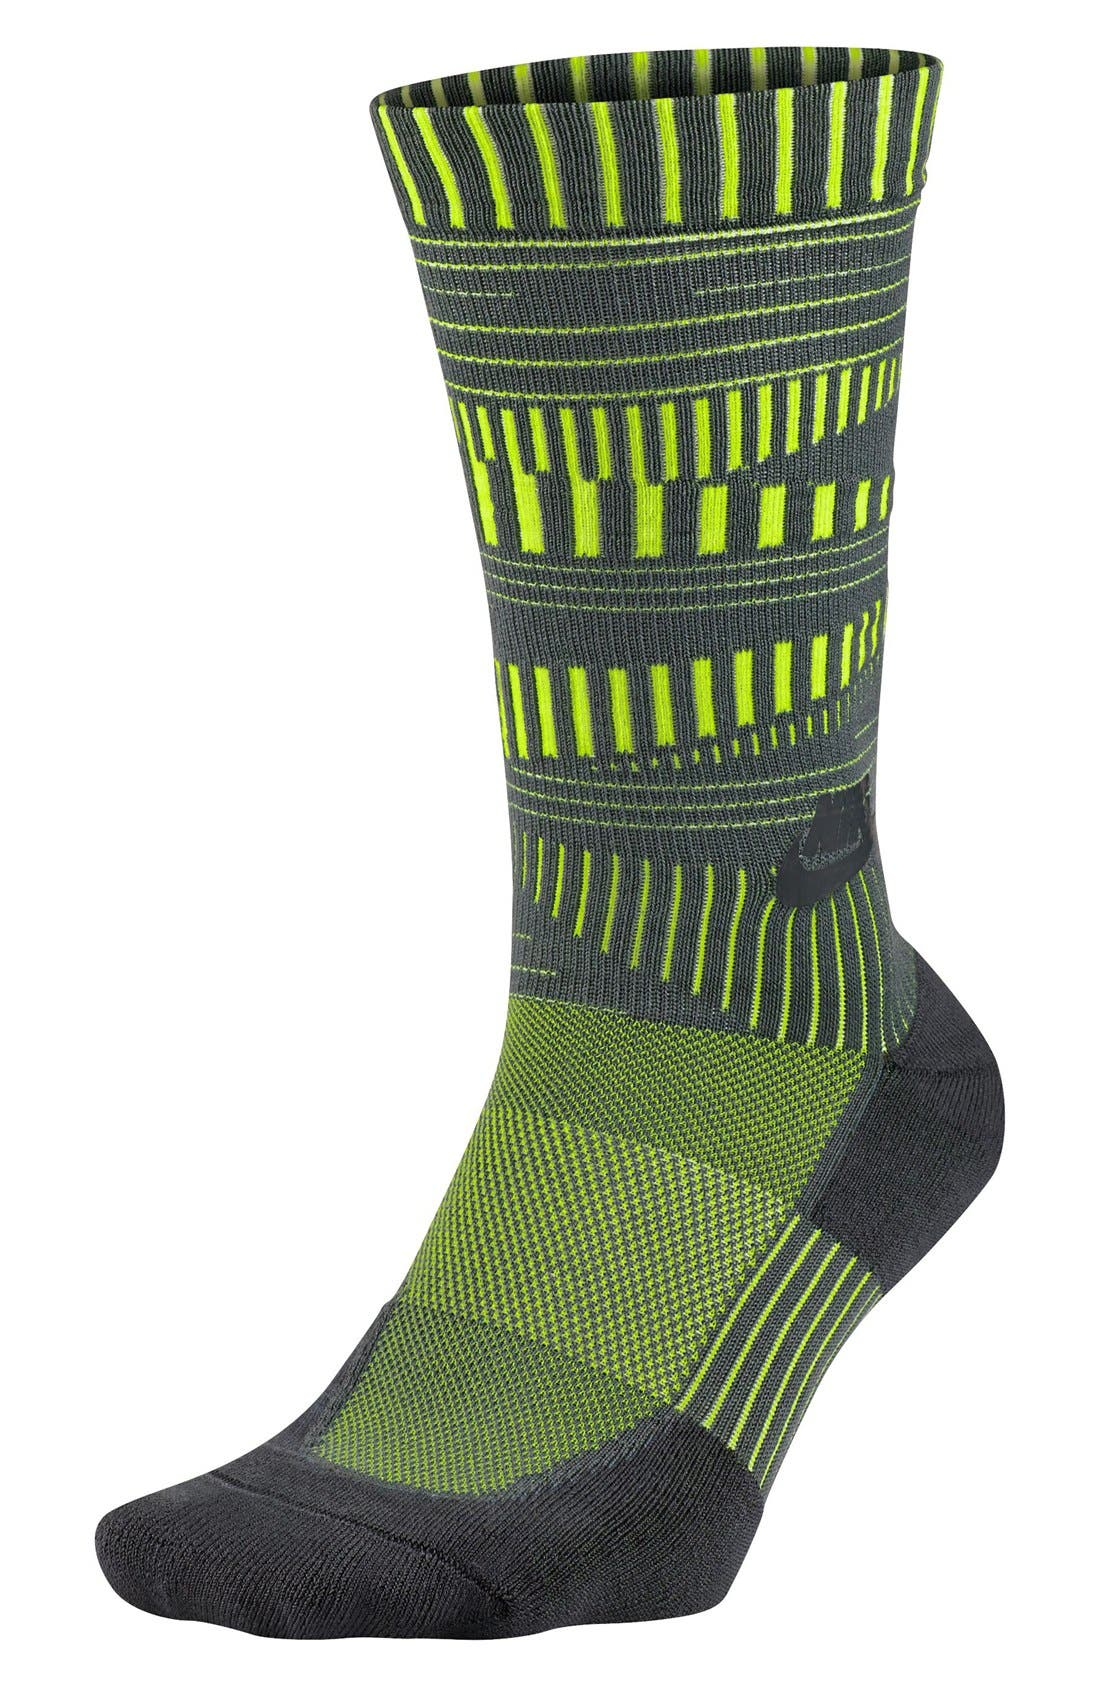 Alternate Image 1 Selected - Nike Crew Socks